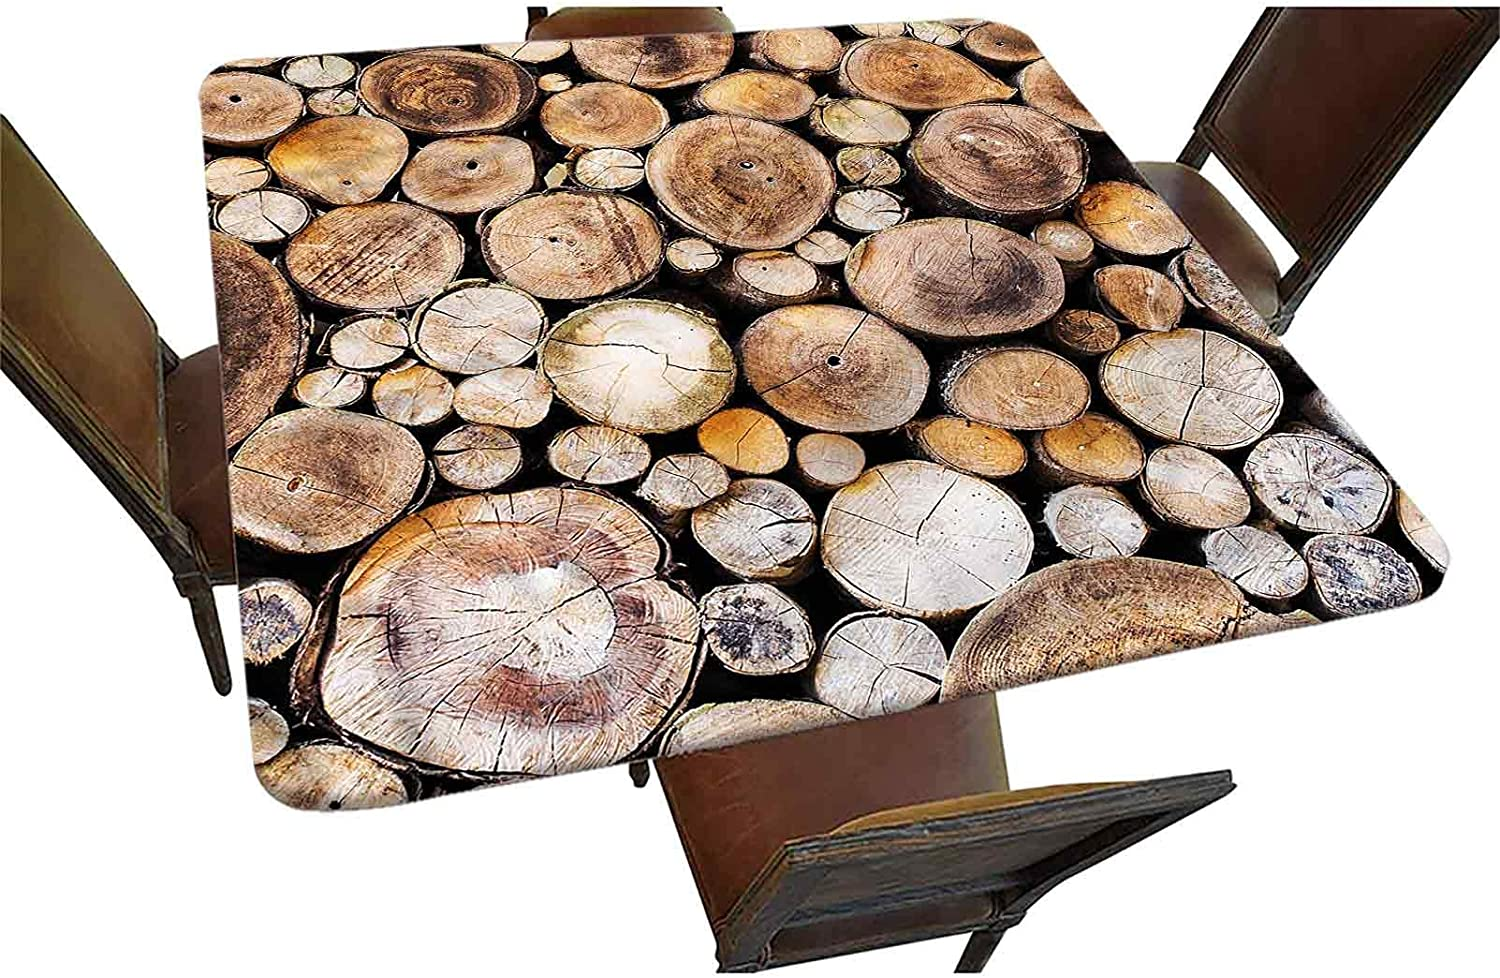 Rustic Decor Elastic Edged Square Al sold out. Wooden Logs Fitted Tablecloth New product